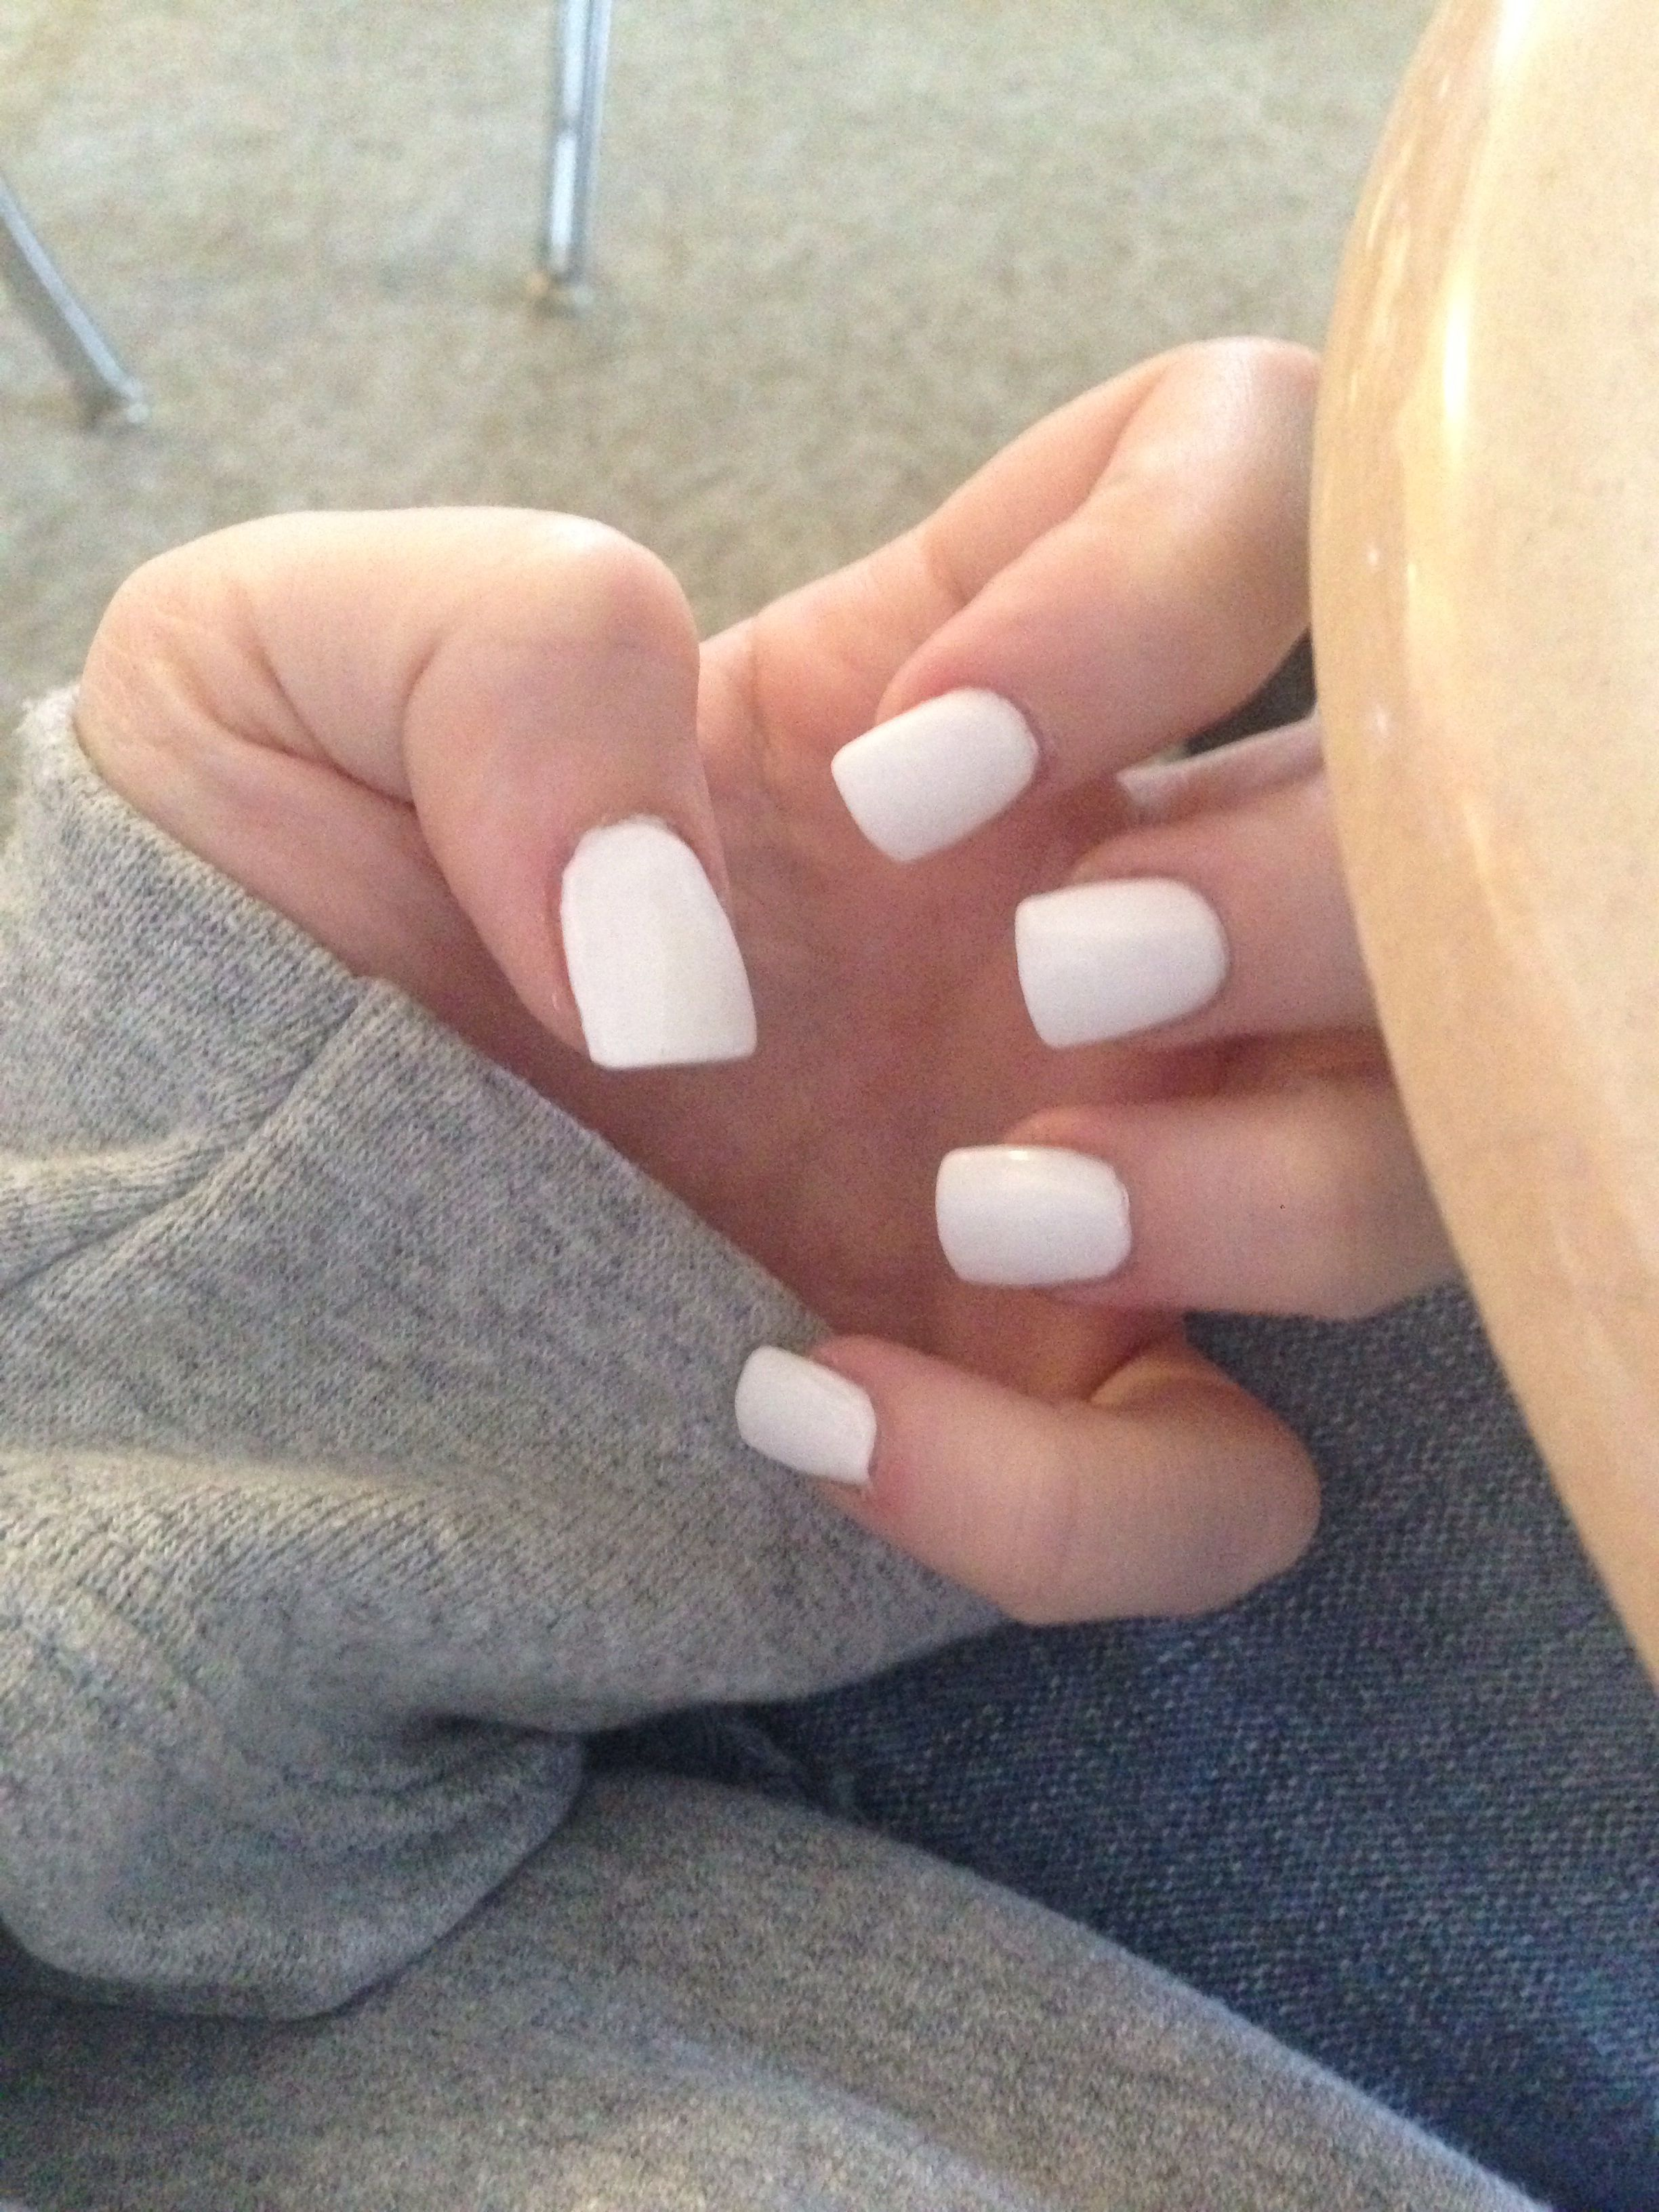 just a white acrylic nail | Nails | Pinterest | White acrylic nails ...